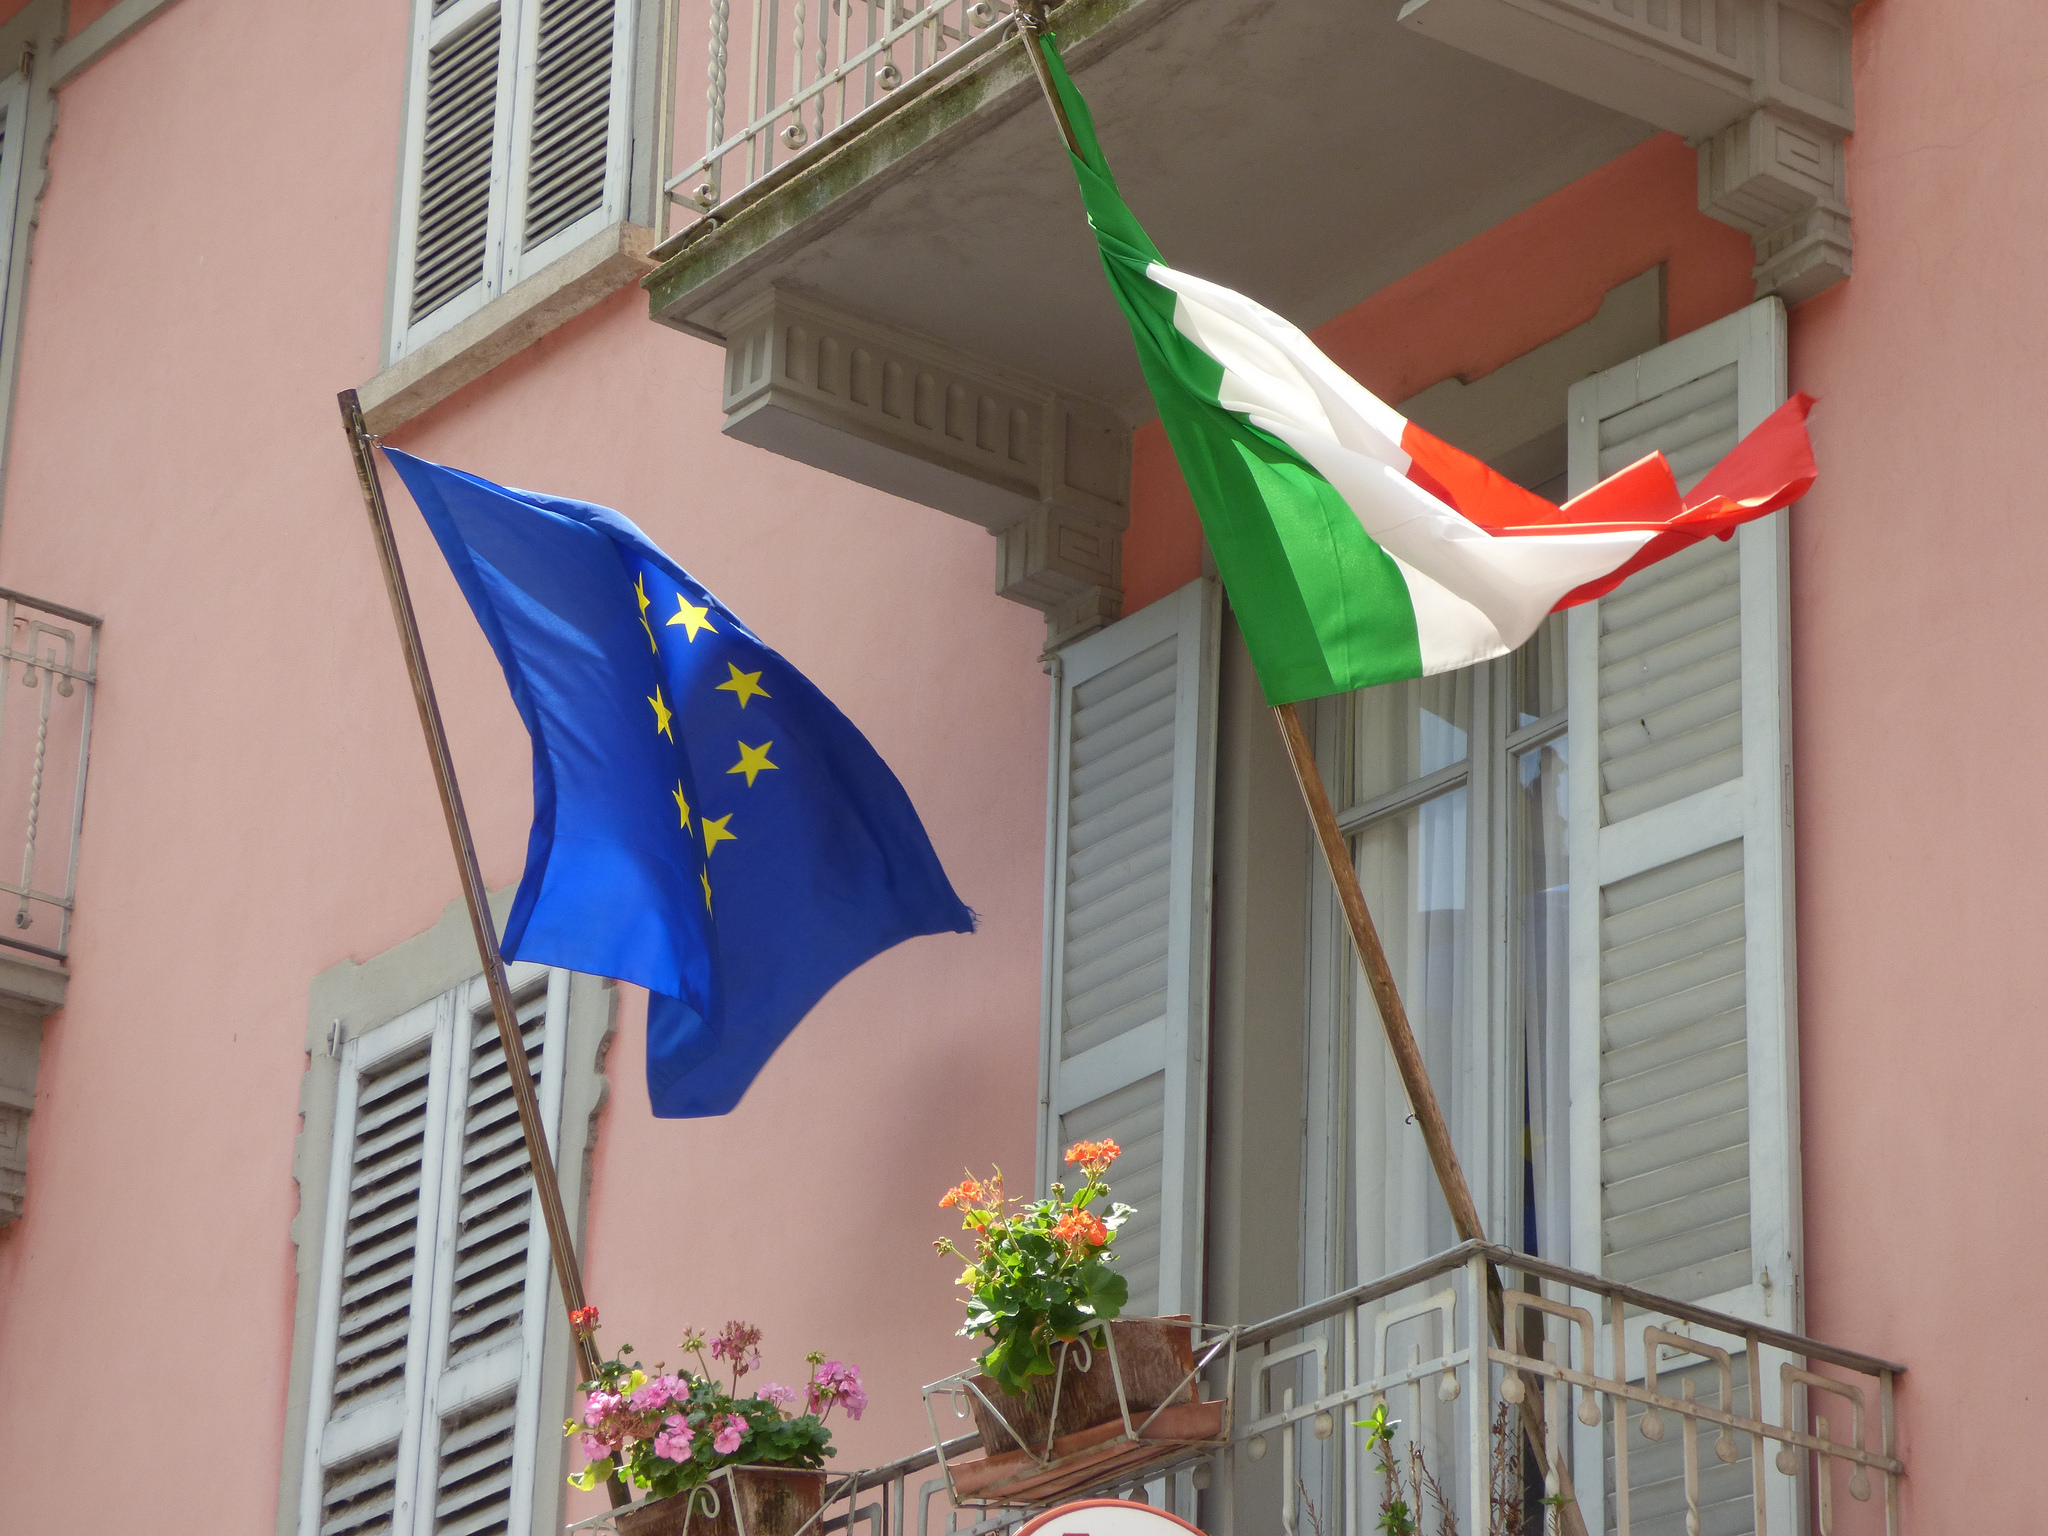 Flags of the European Union and Italy fly side-by-side